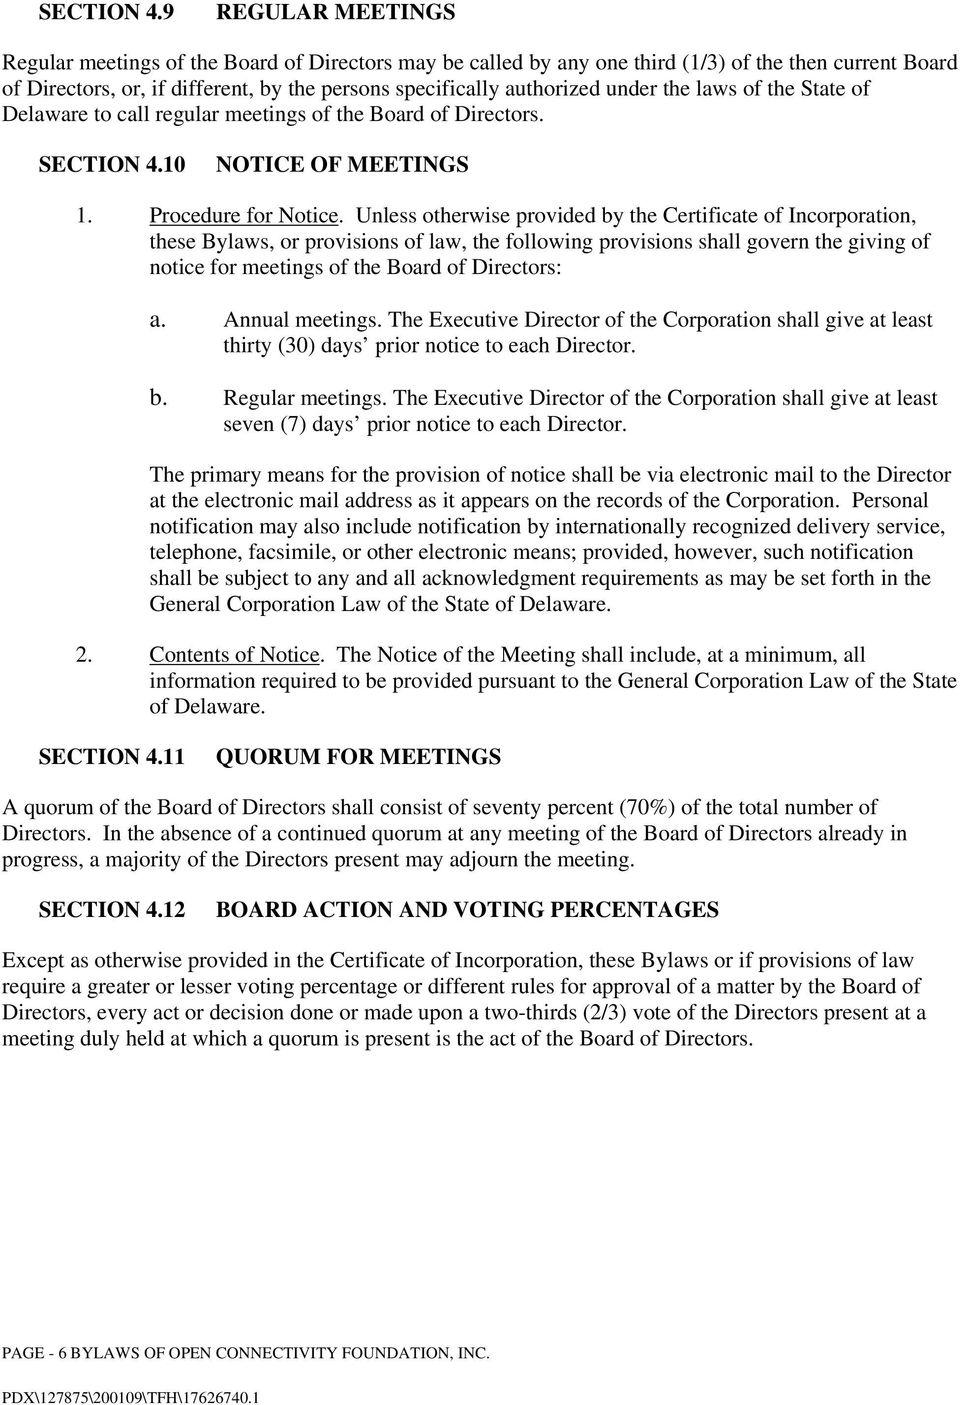 under the laws of the State of Delaware to call regular meetings of the Board of Directors. 10 NOTICE OF MEETINGS 1. Procedure for Notice.